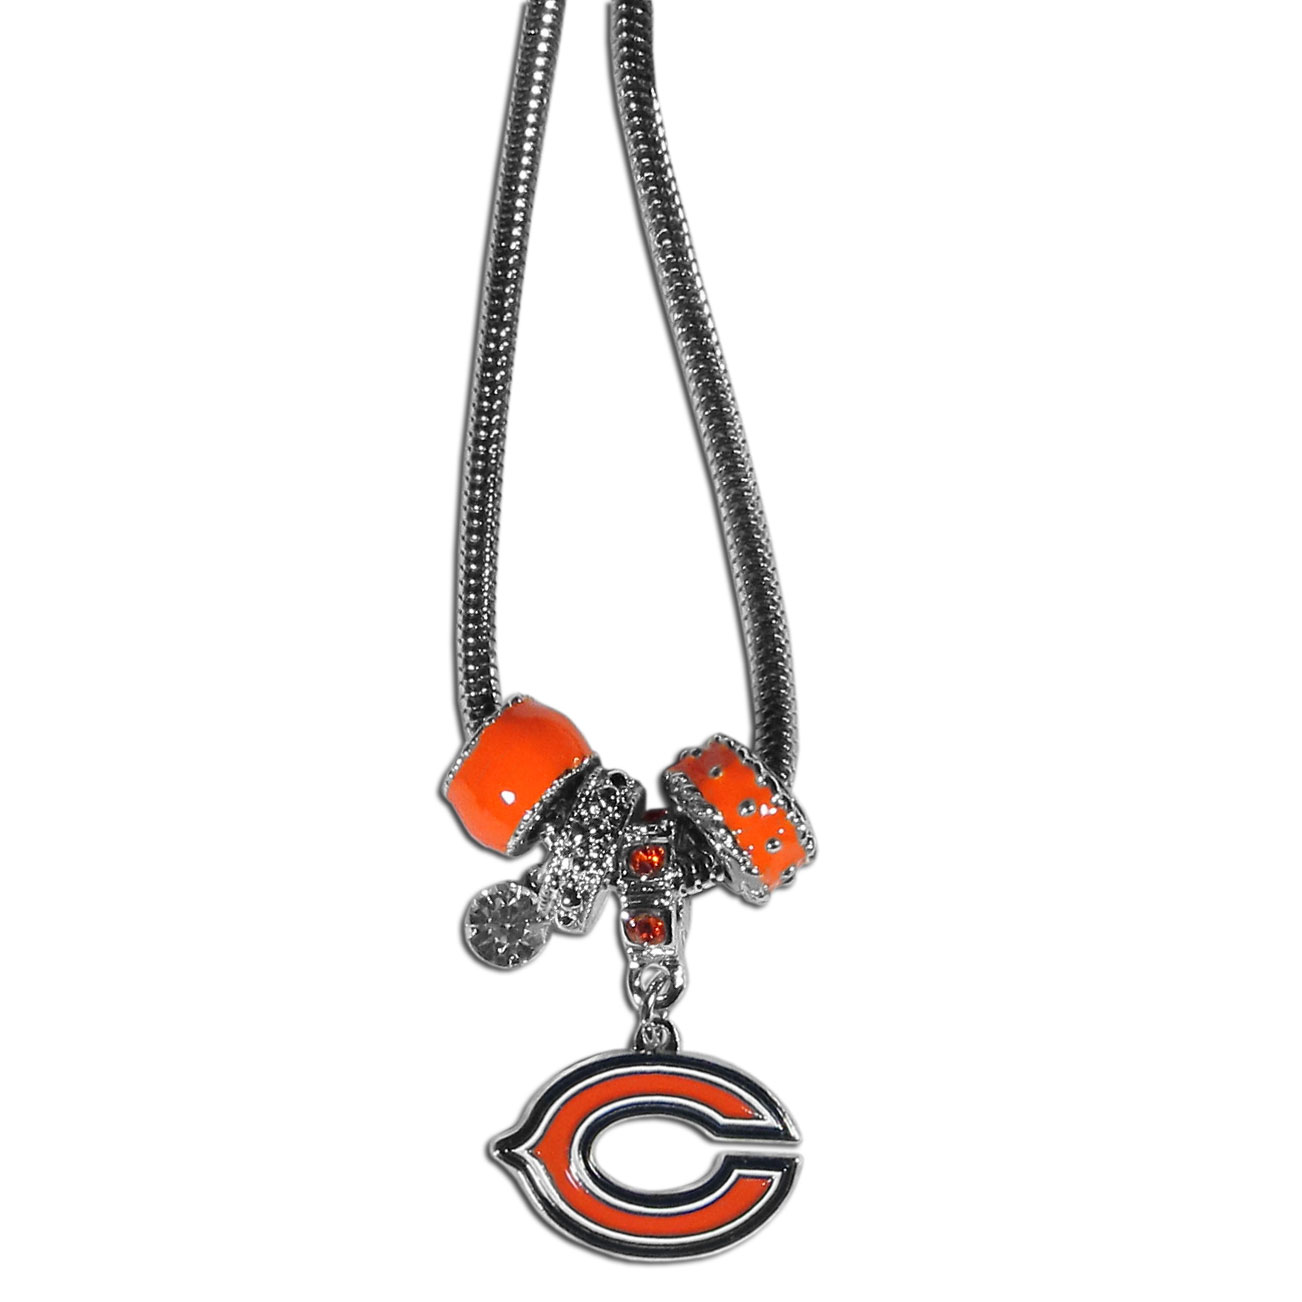 Chicago Bears Euro Bead Necklace - We have combined the wildly popular Euro style beads with your favorite team to create our Chicago Bears bead necklace. The 18 inch snake chain features 4 Euro beads with enameled team colors and rhinestone accents with a high polish, nickel free charm and rhinestone charm. Perfect way to show off your team pride.